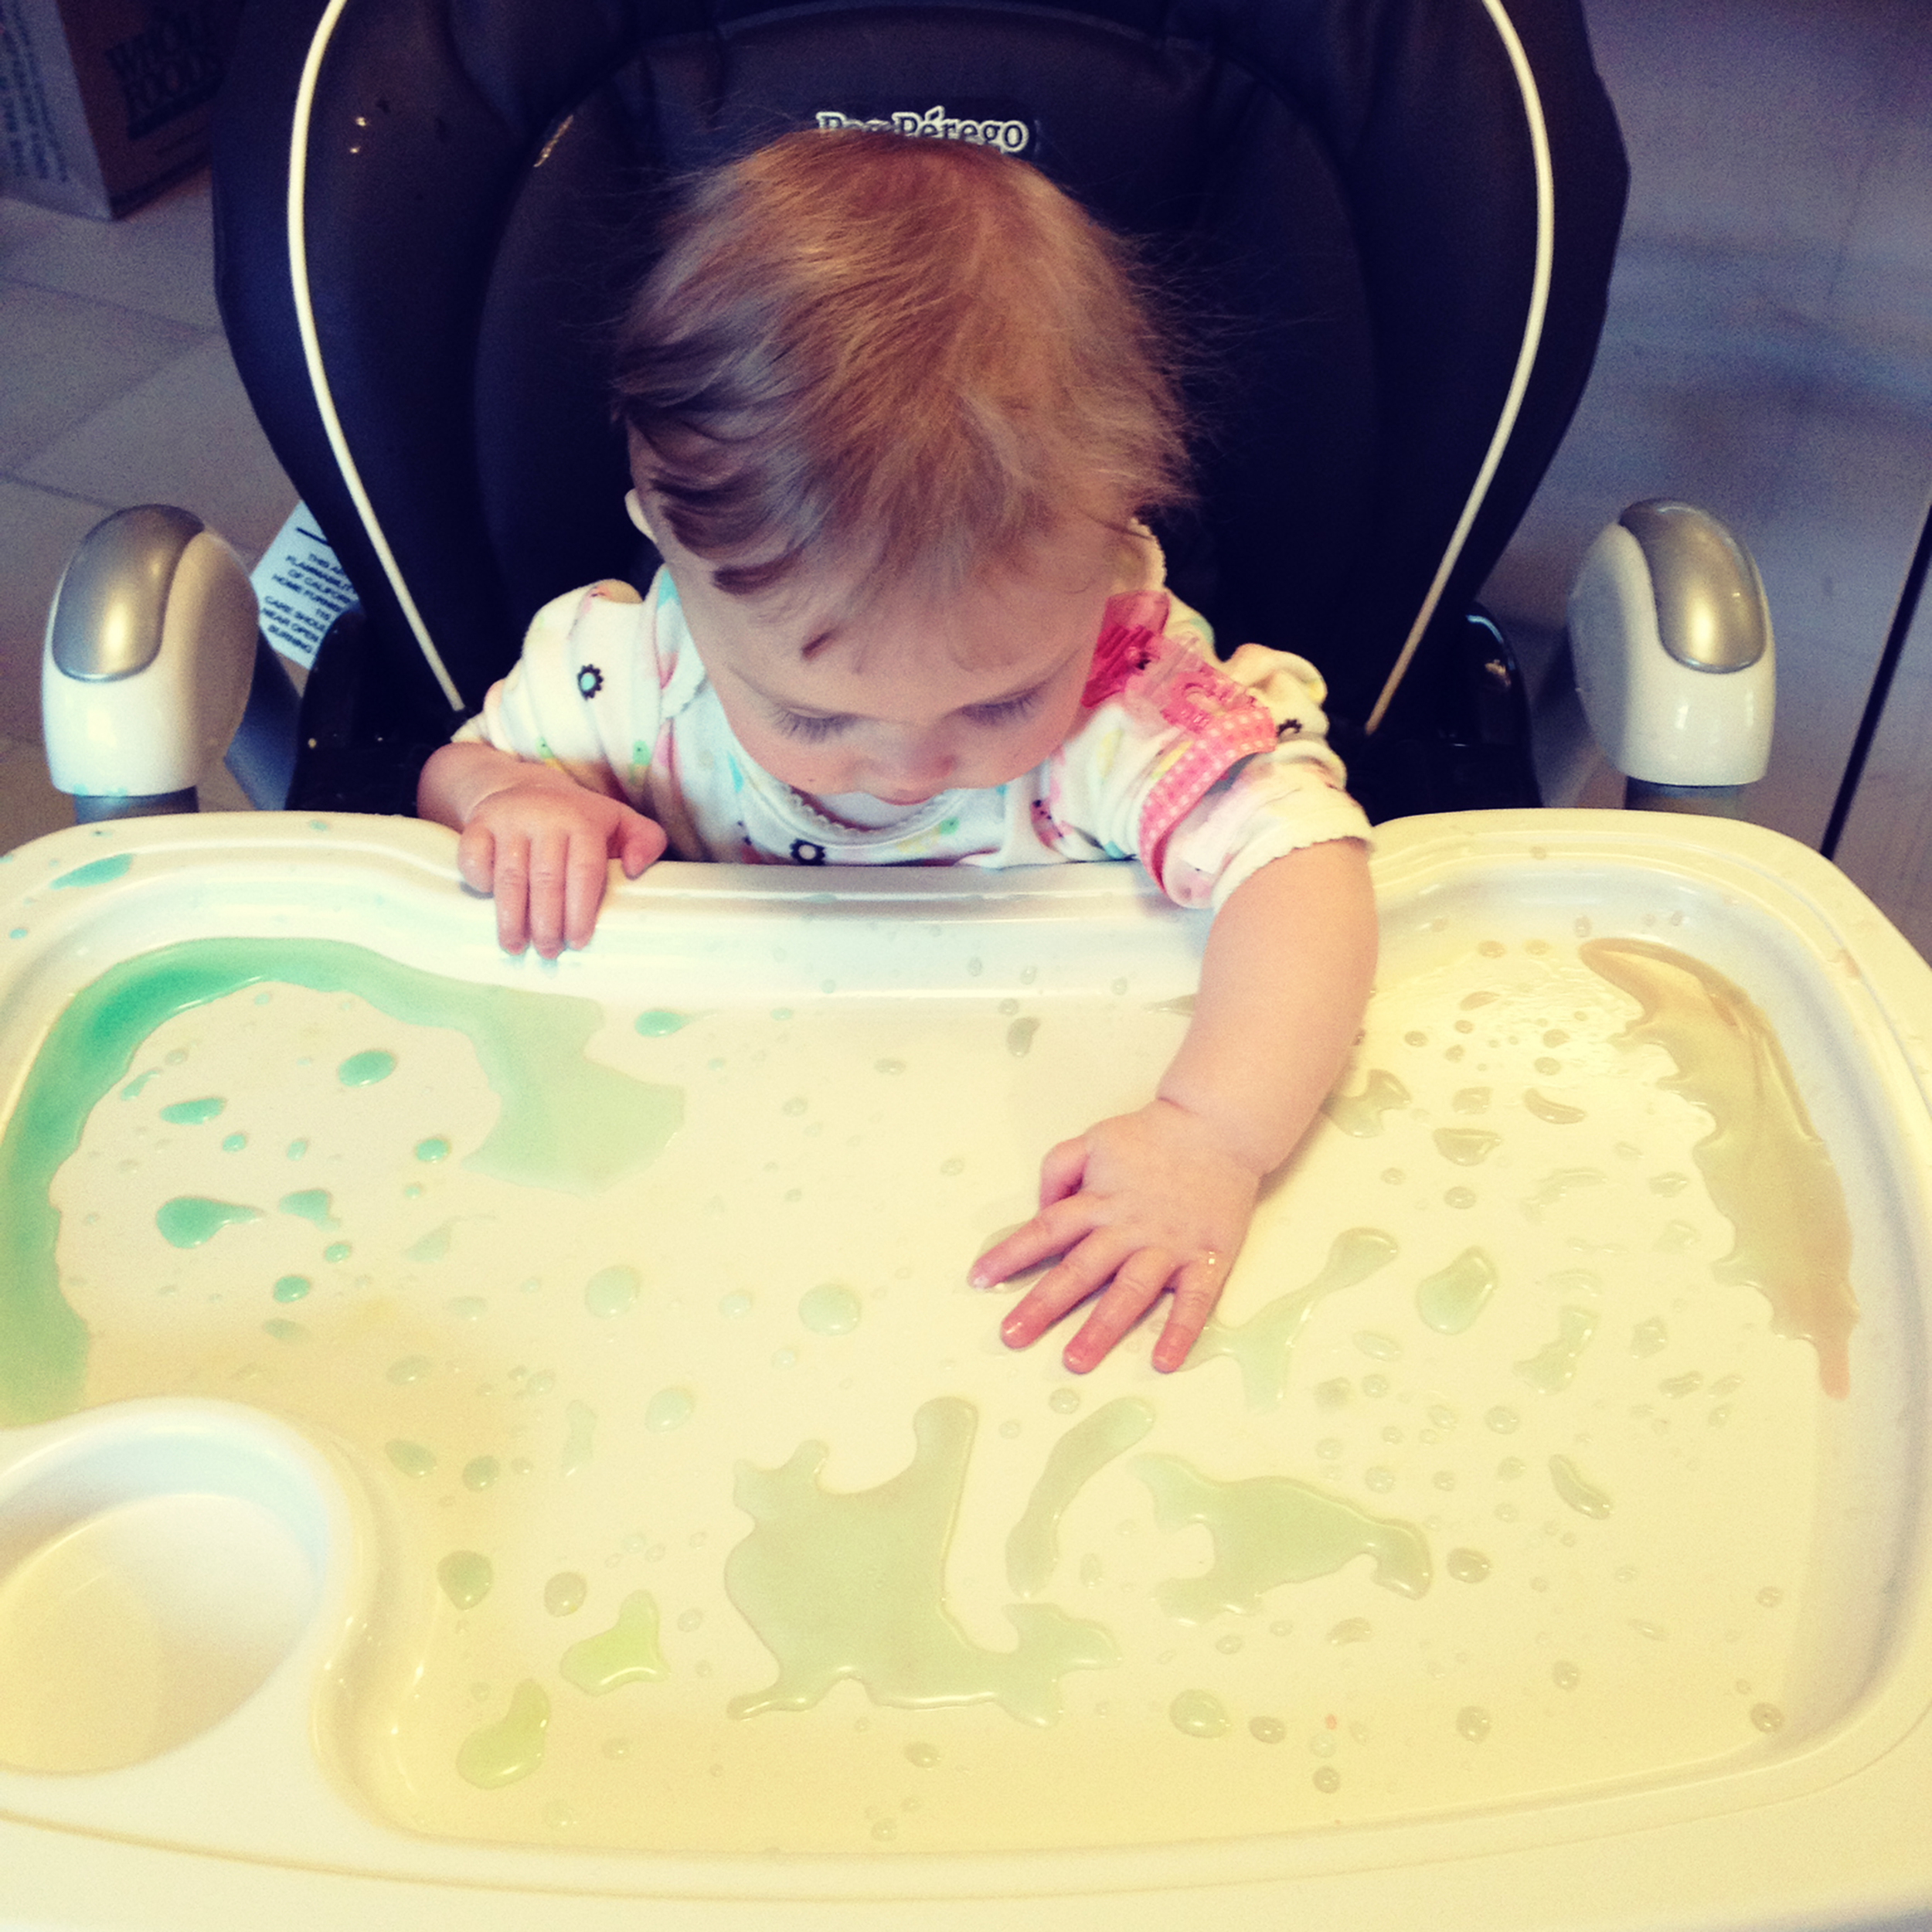 My daughter exploring watercolor droplets on her tray, age 8 months